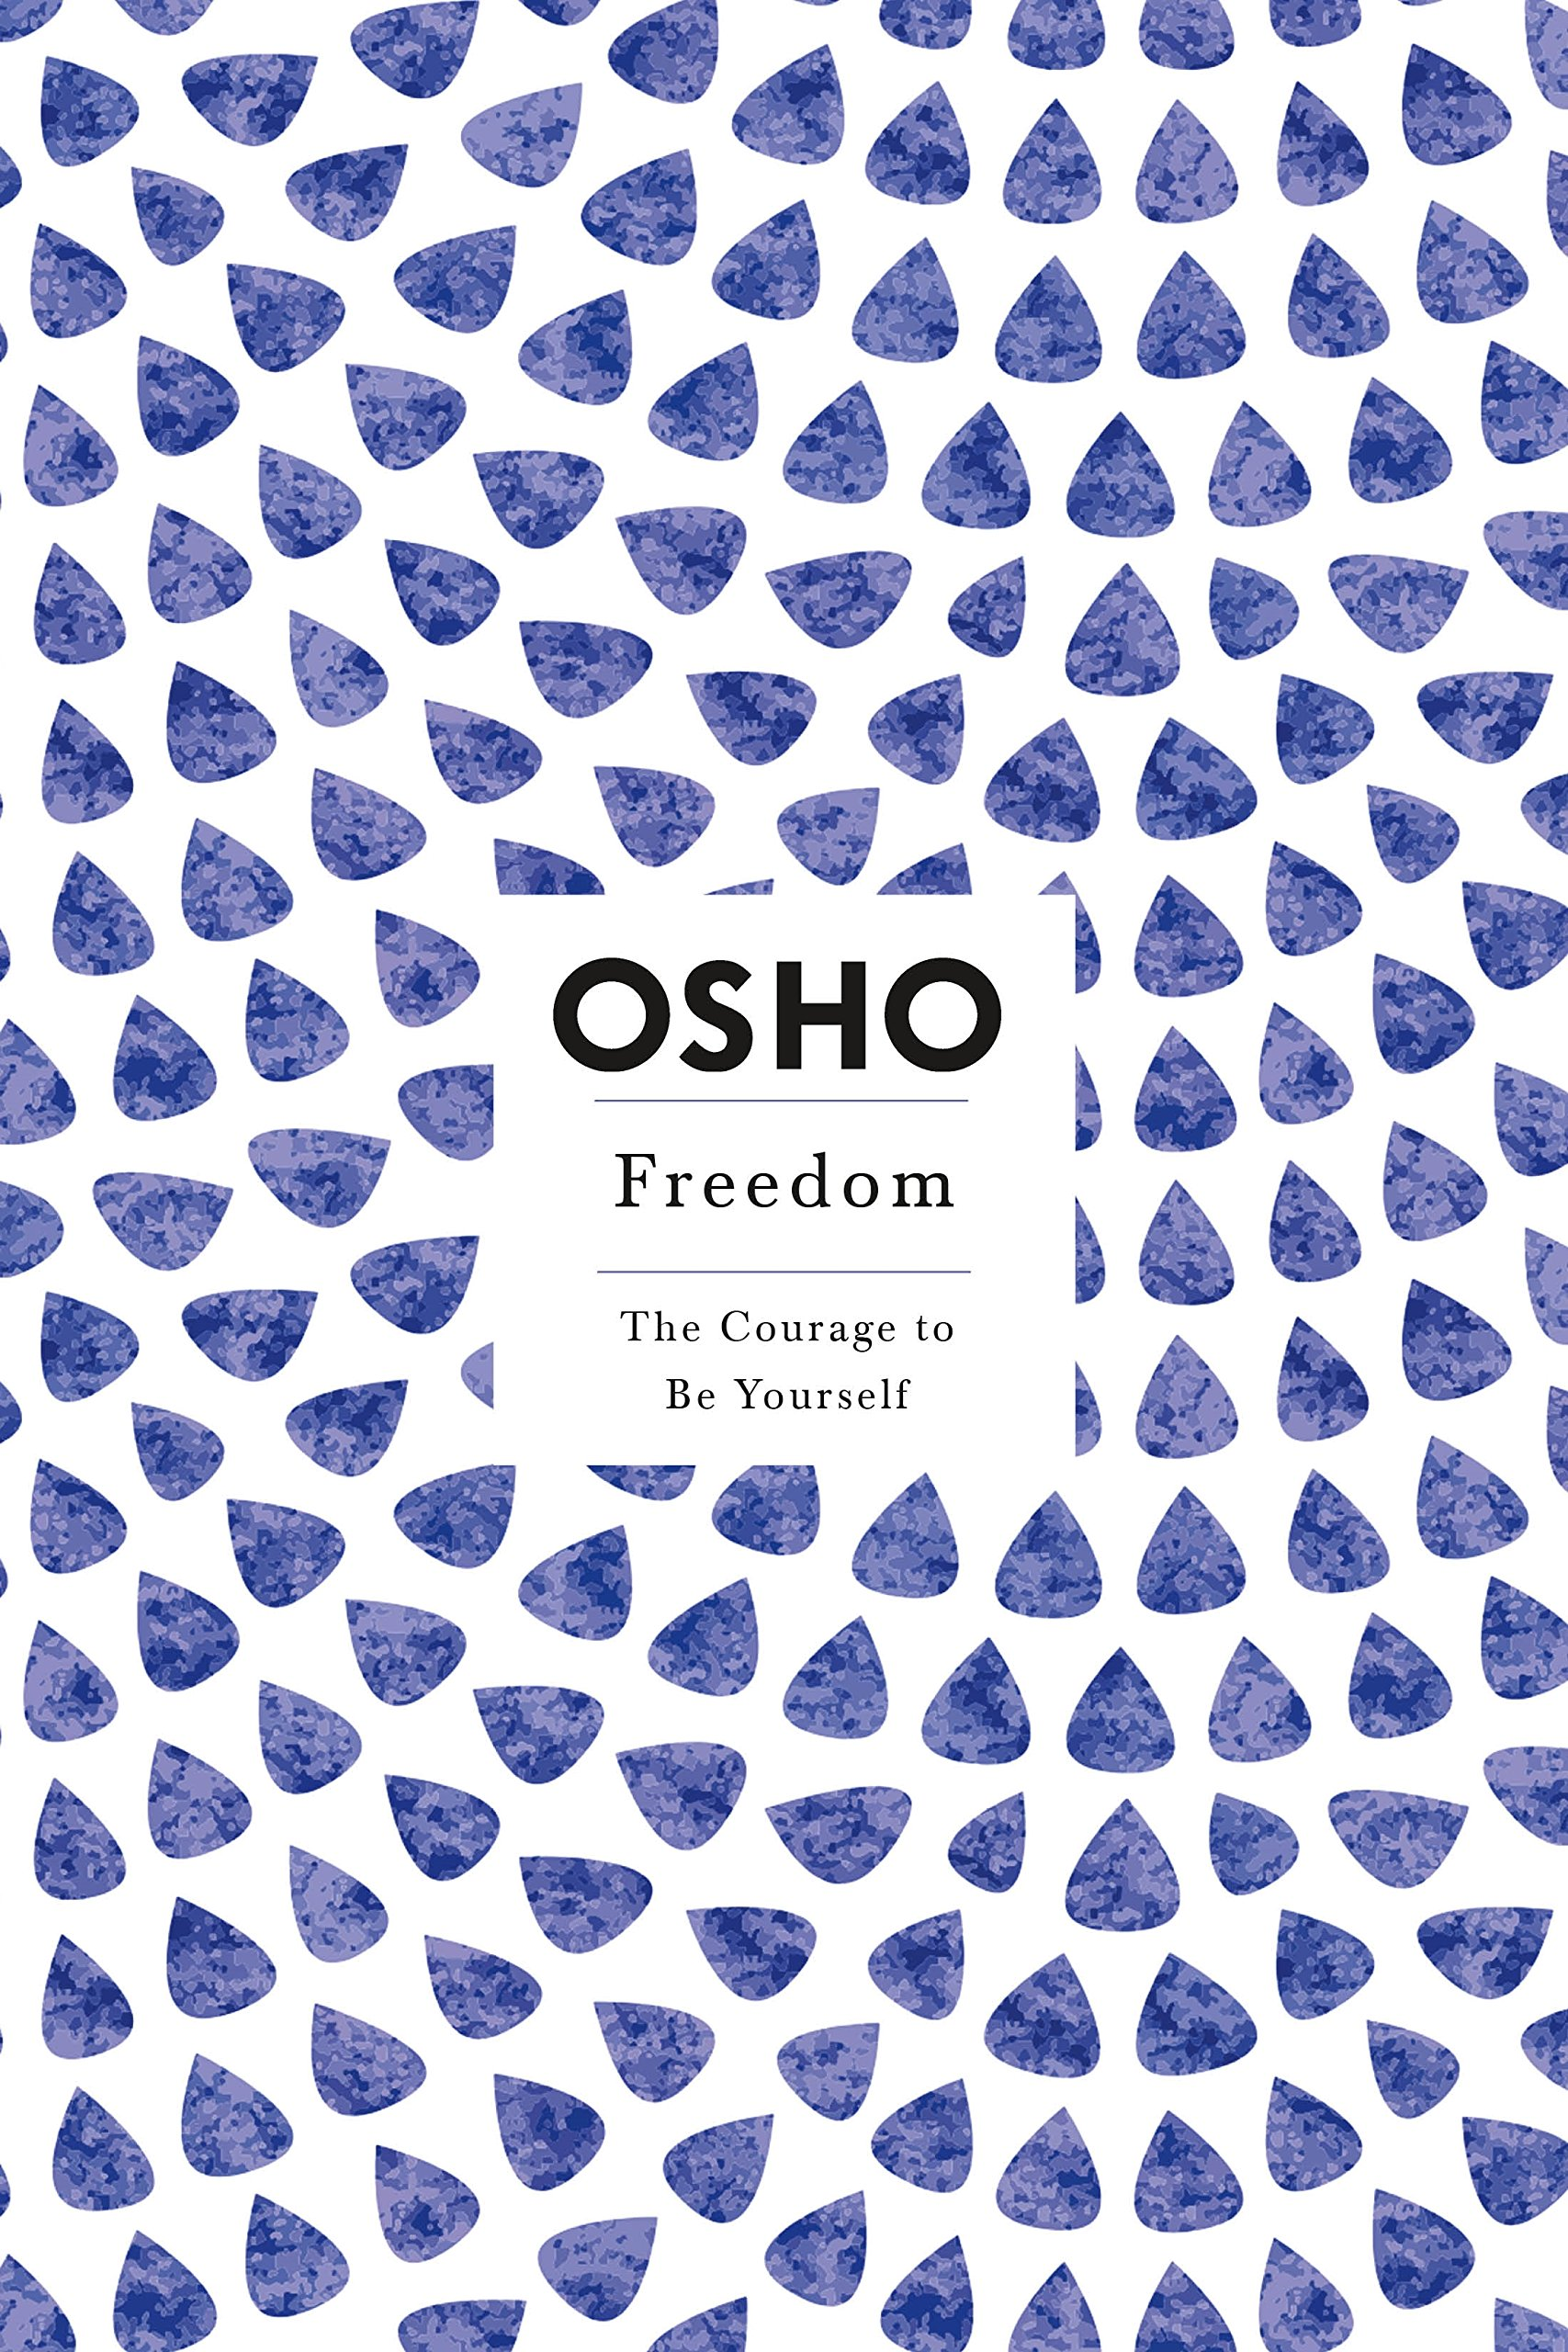 Freedom the courage to be yourself osho insights for a new way of freedom the courage to be yourself osho insights for a new way of living series osho 9780312320706 amazon books geenschuldenfo Image collections